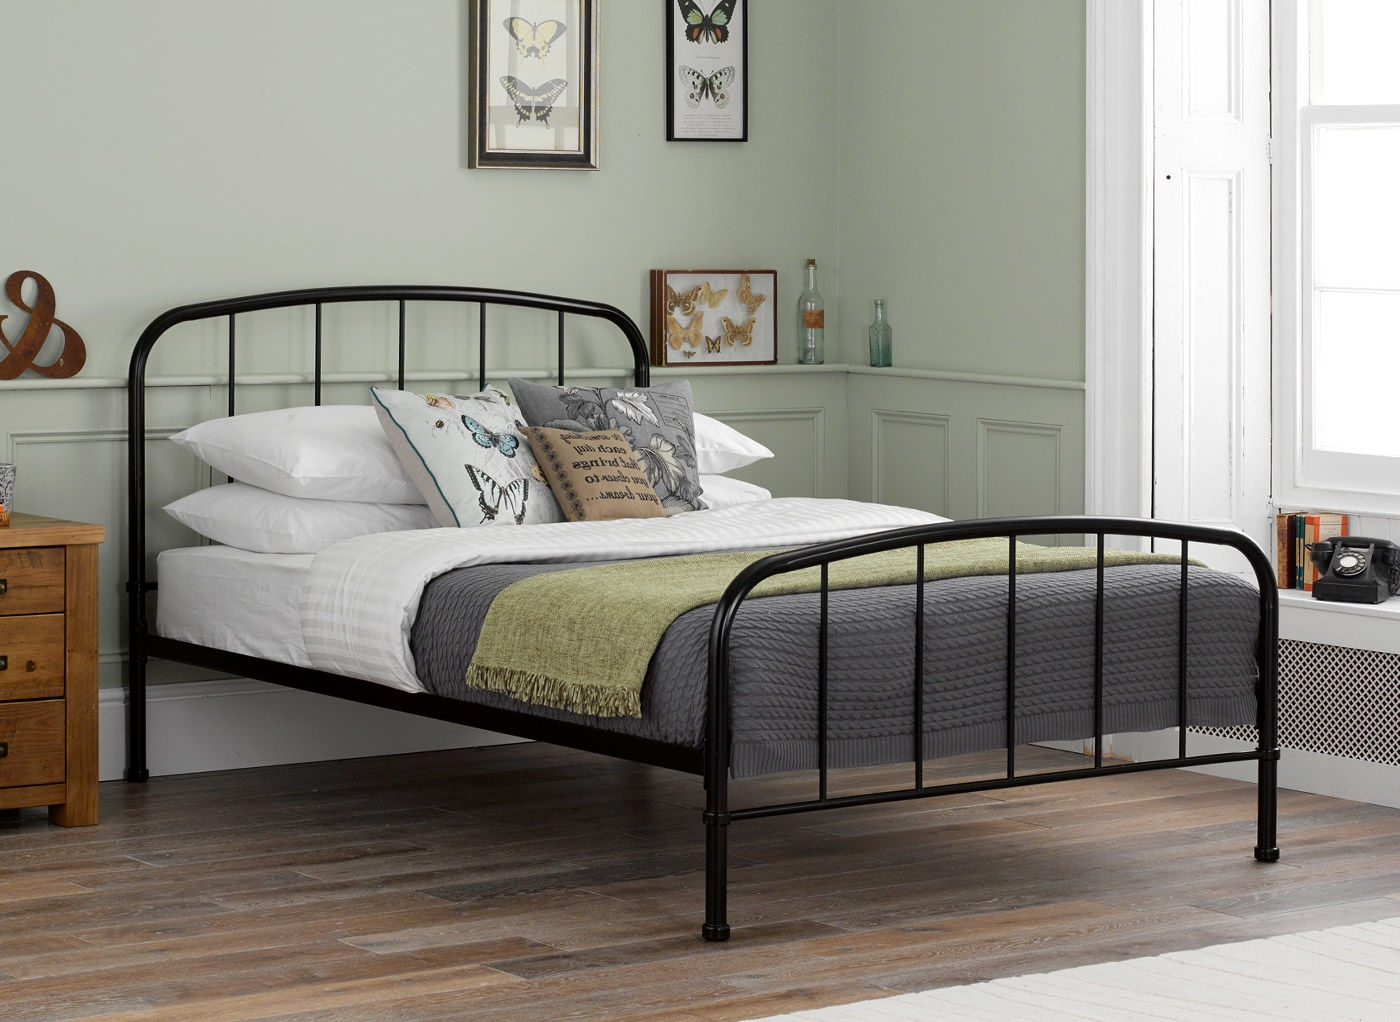 Antique Style Metal Bed Frames